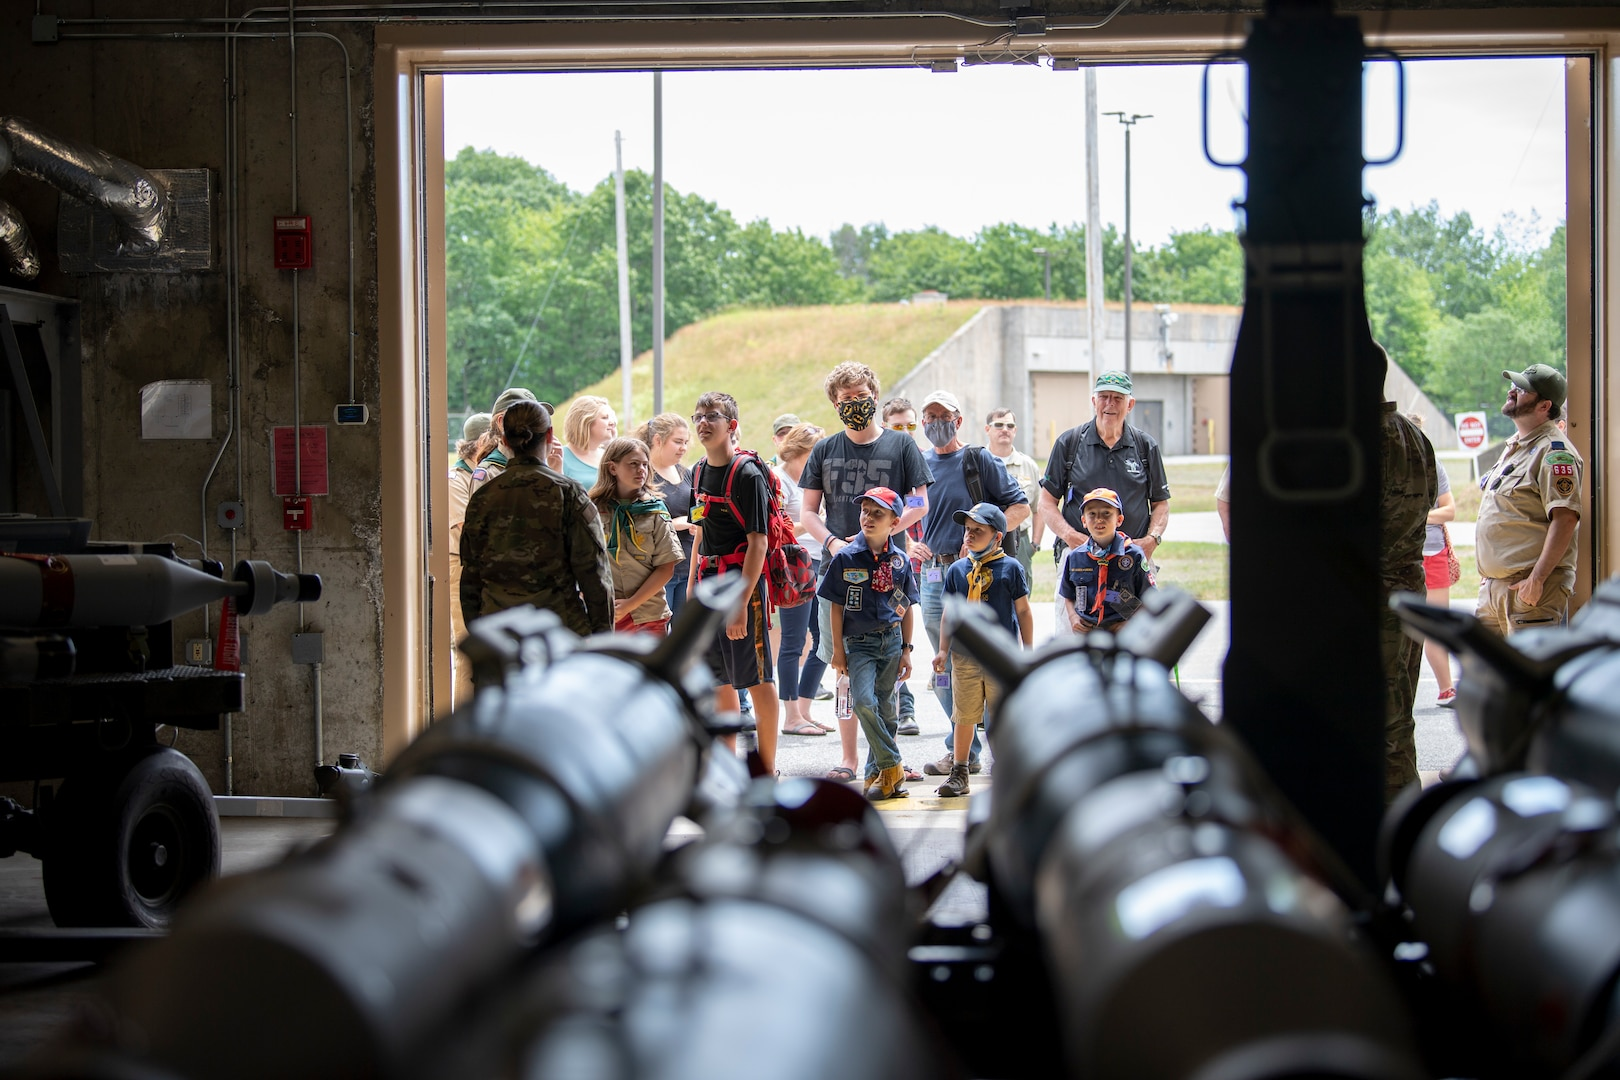 Children from a local scout group along with civilians look into a munitions bunker during a group tour of the Vermont Air National Guard base.